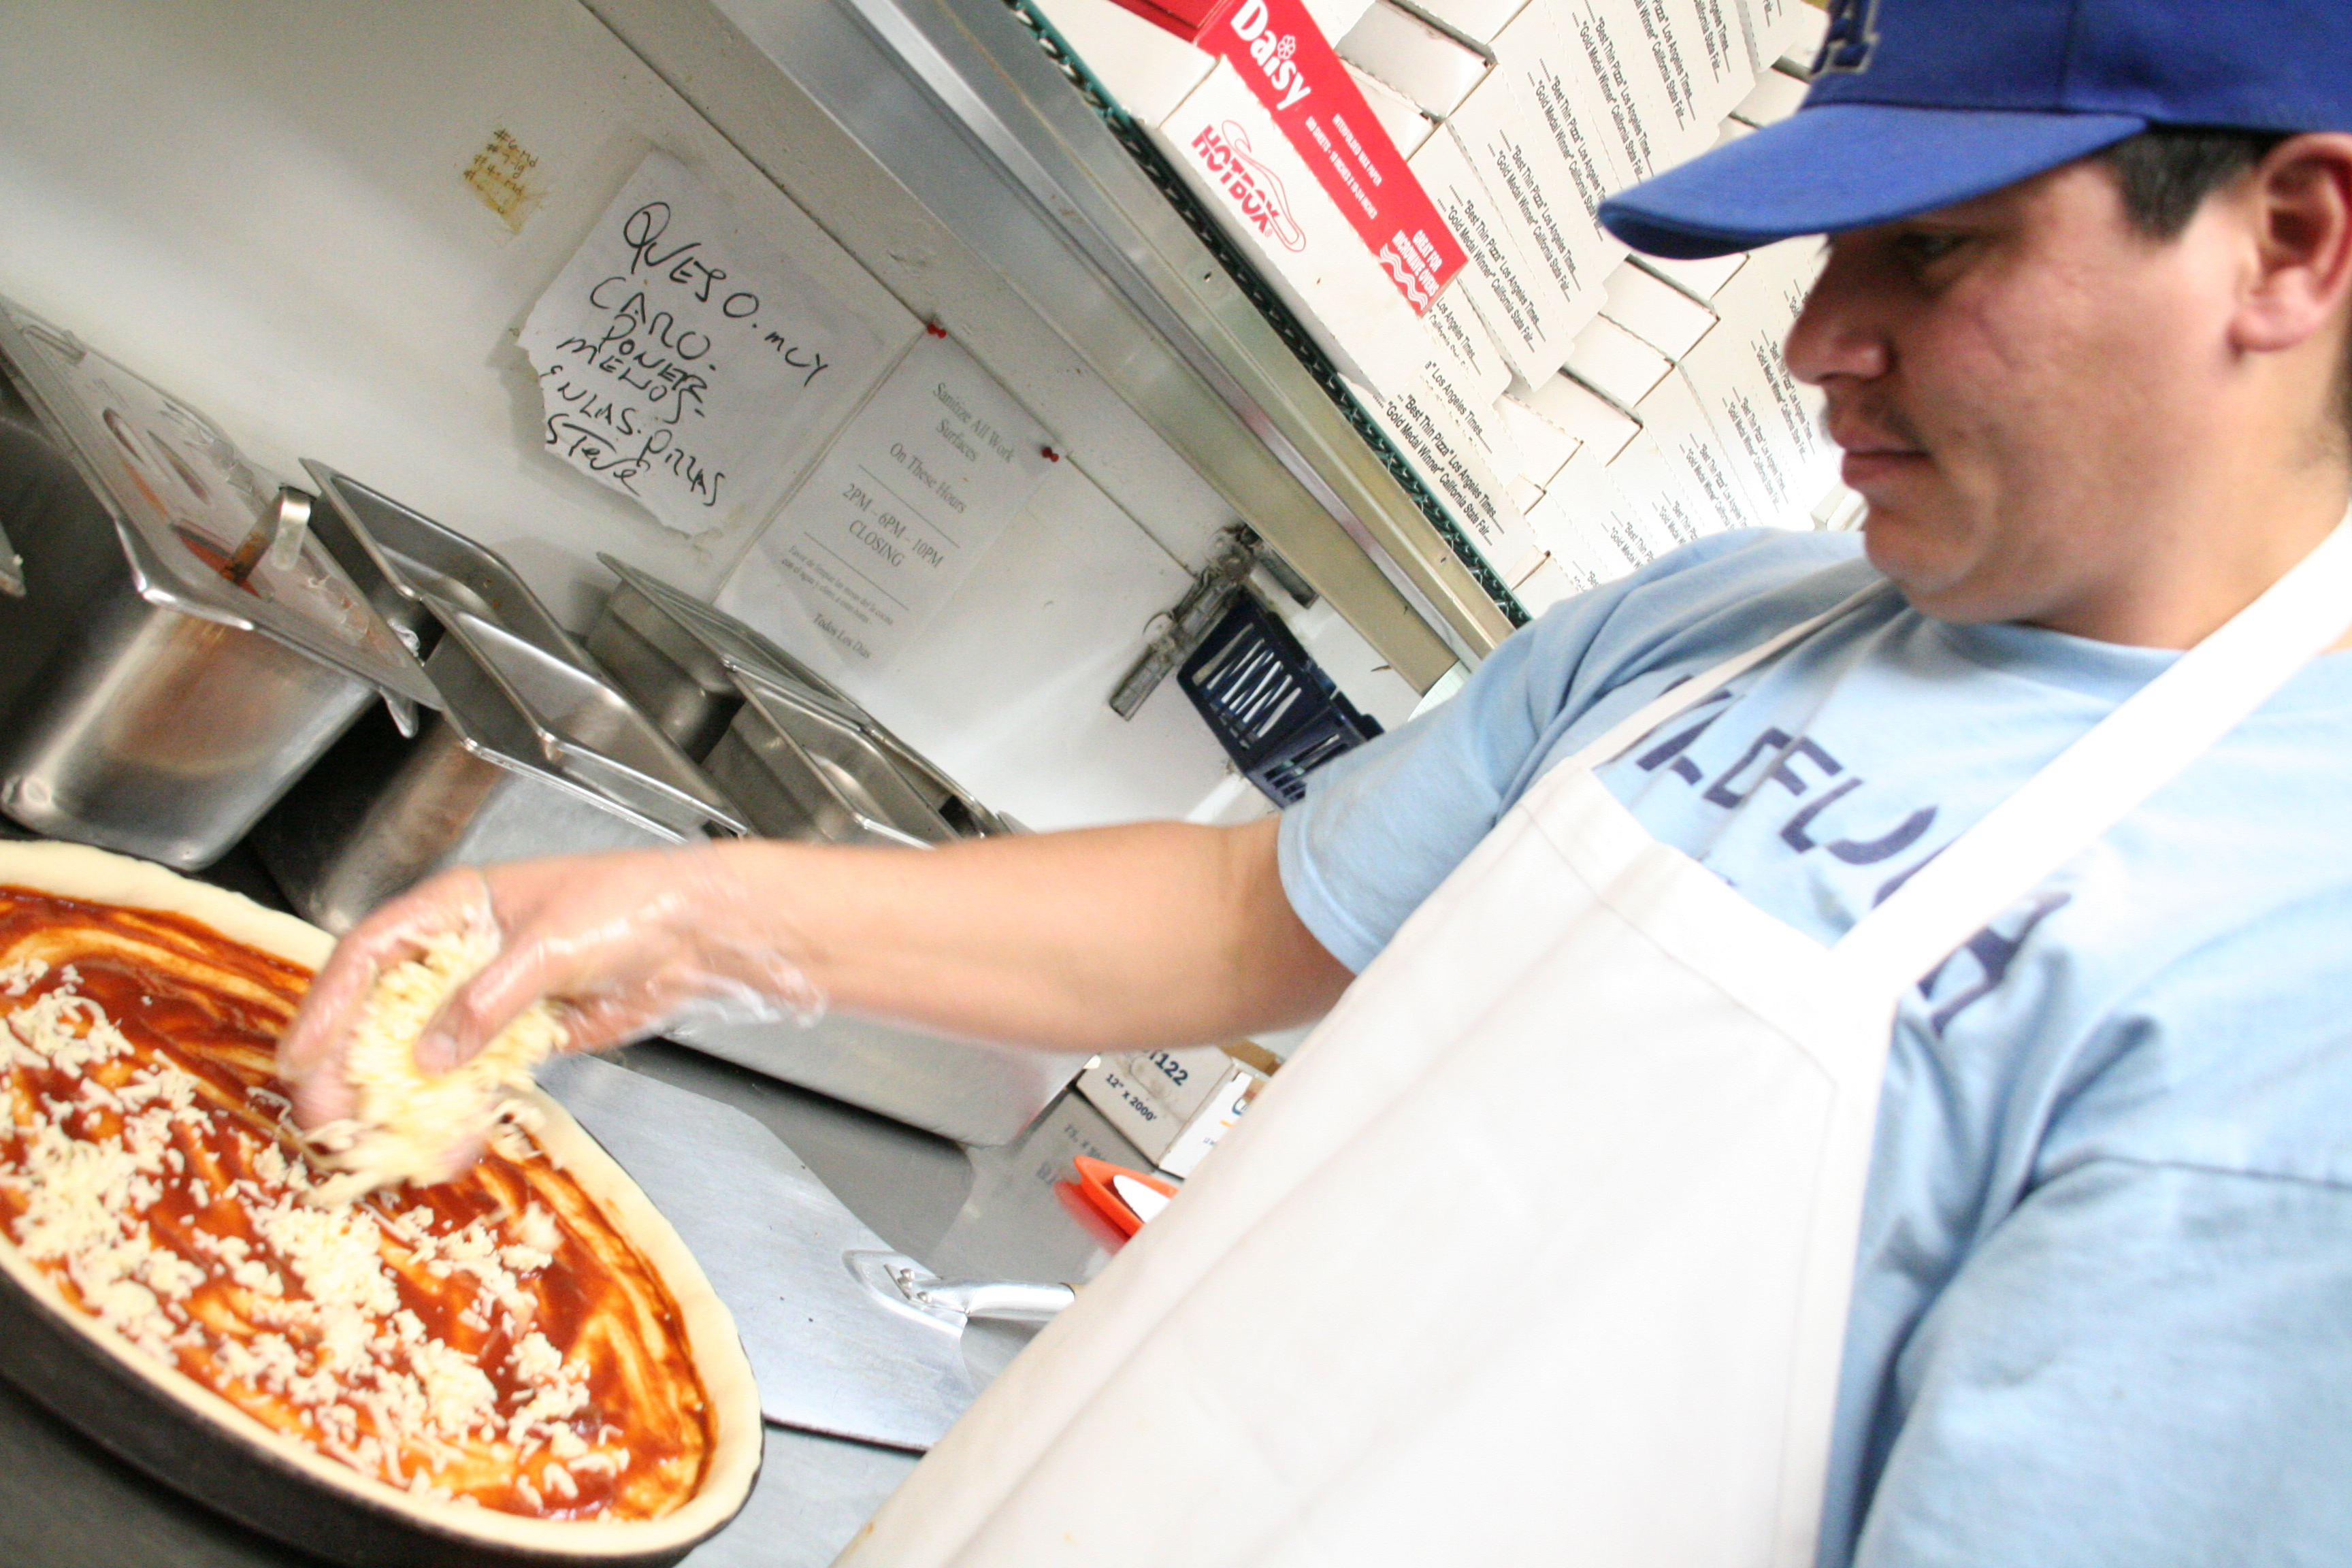 Luis Romo prepares a pie at Wildflour, once voted the number one pizza place in Los Angeles by the L.A. Times.